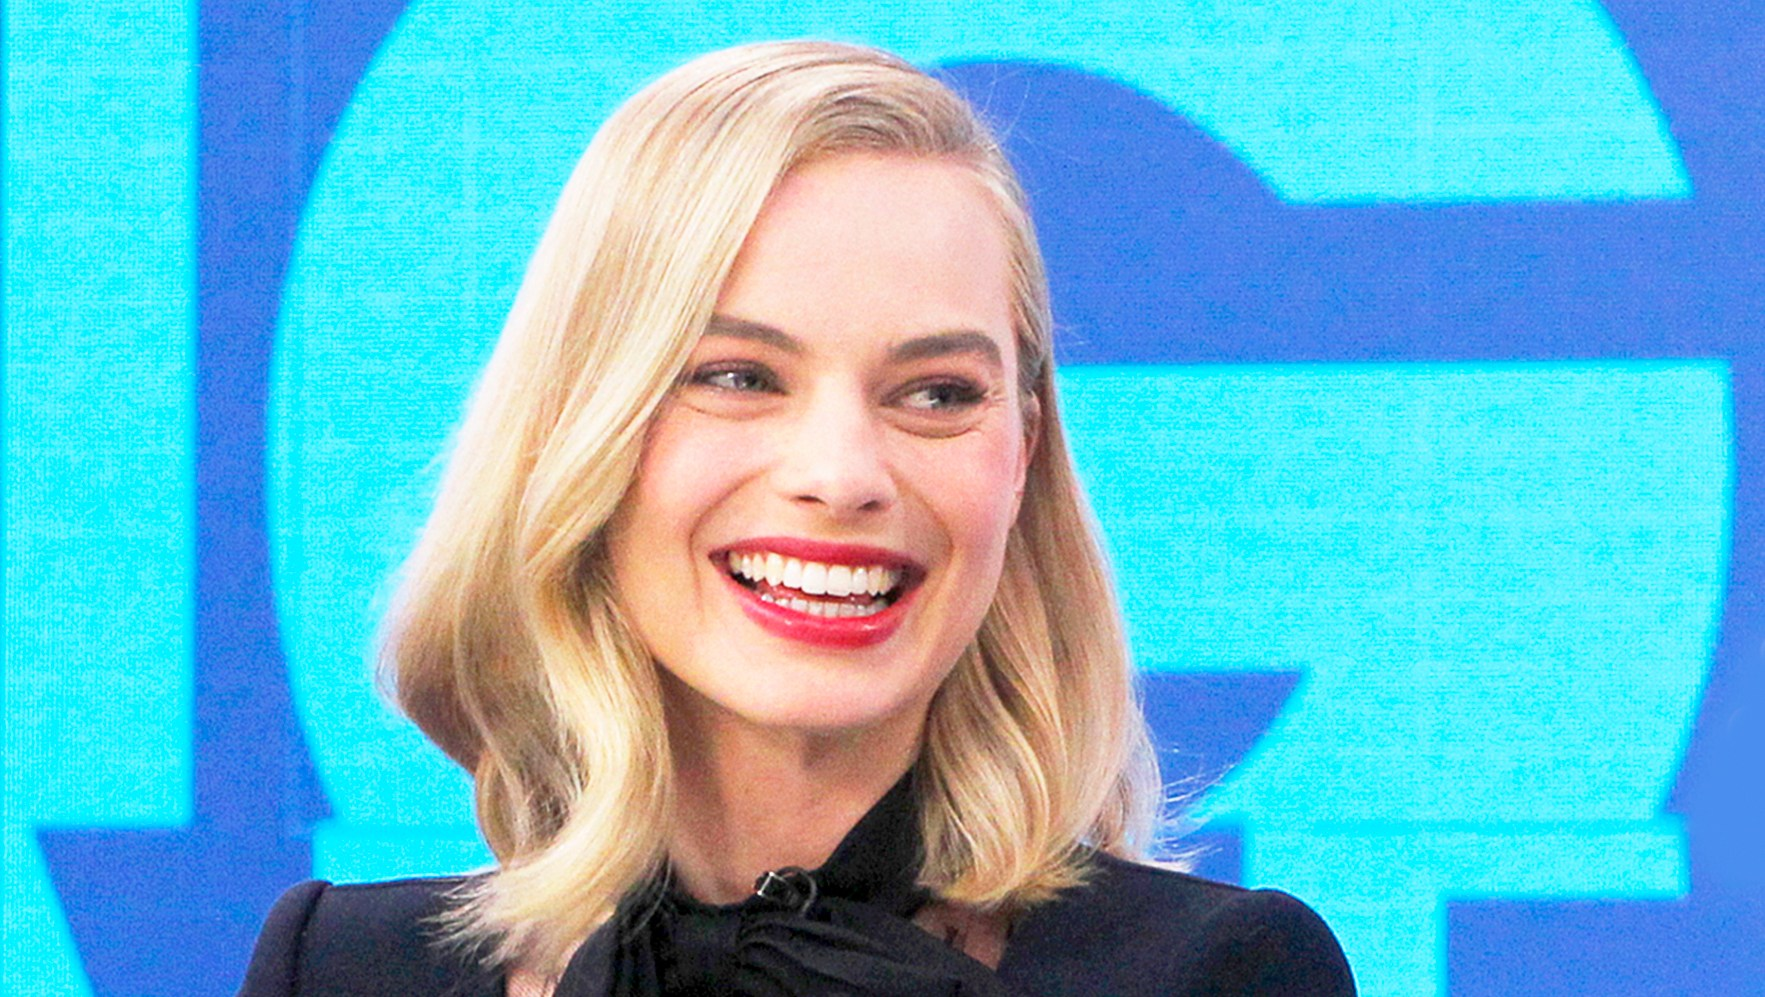 Margot Robbie on 'Good Morning America' show